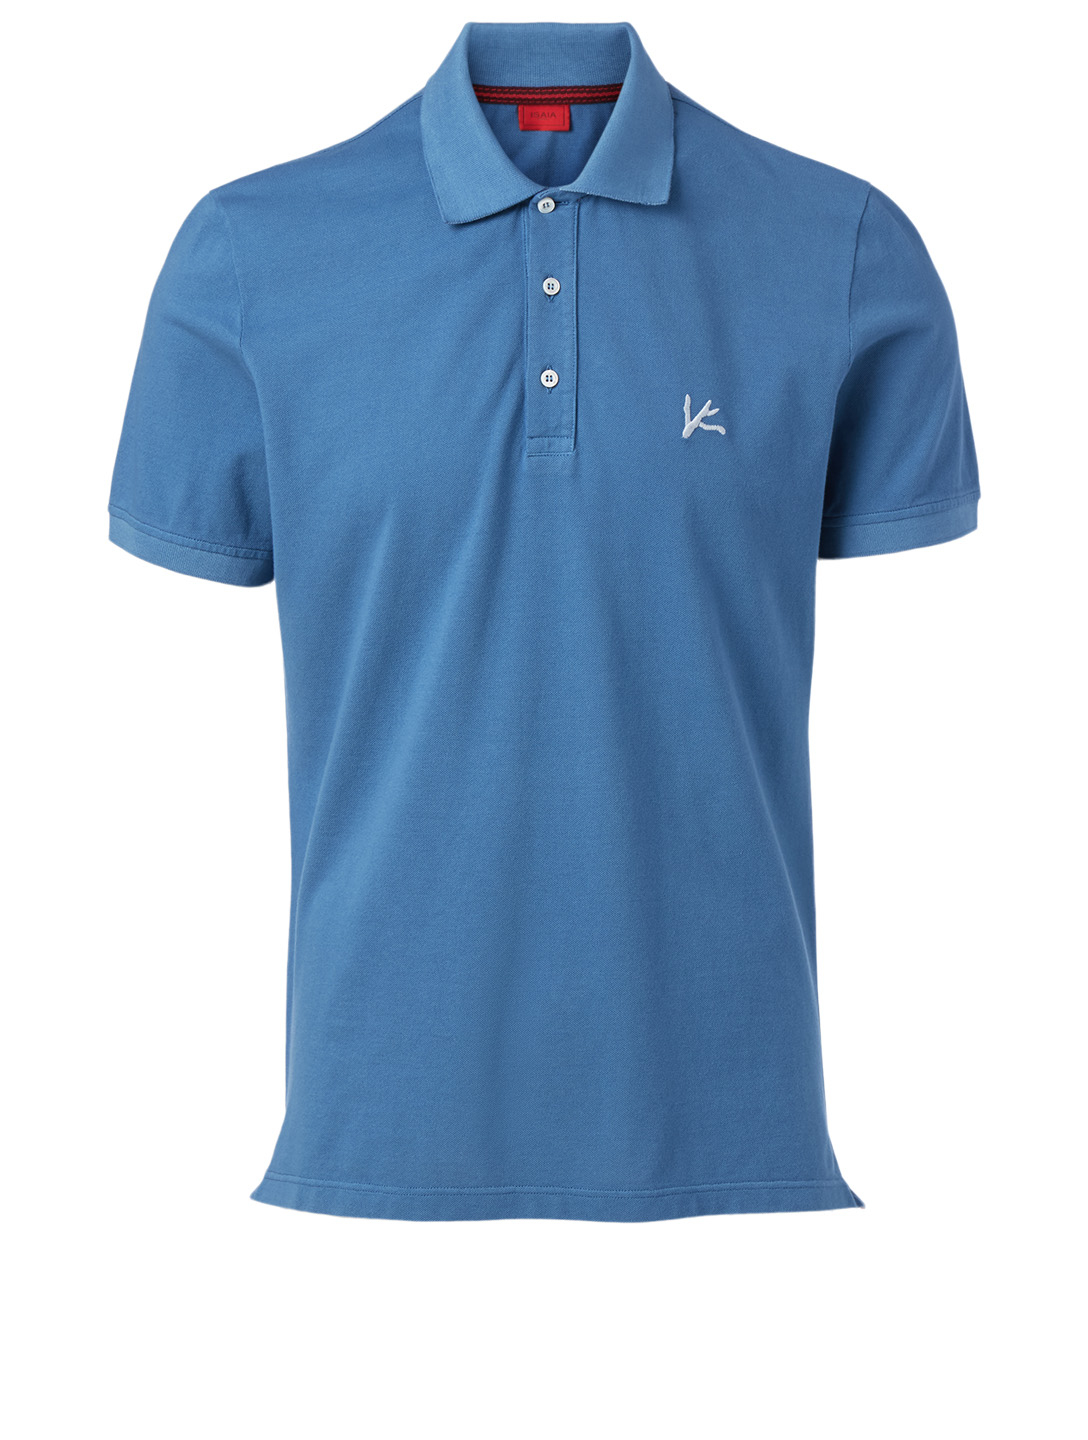 ISAIA Piqué Polo Shirt Men's Blue